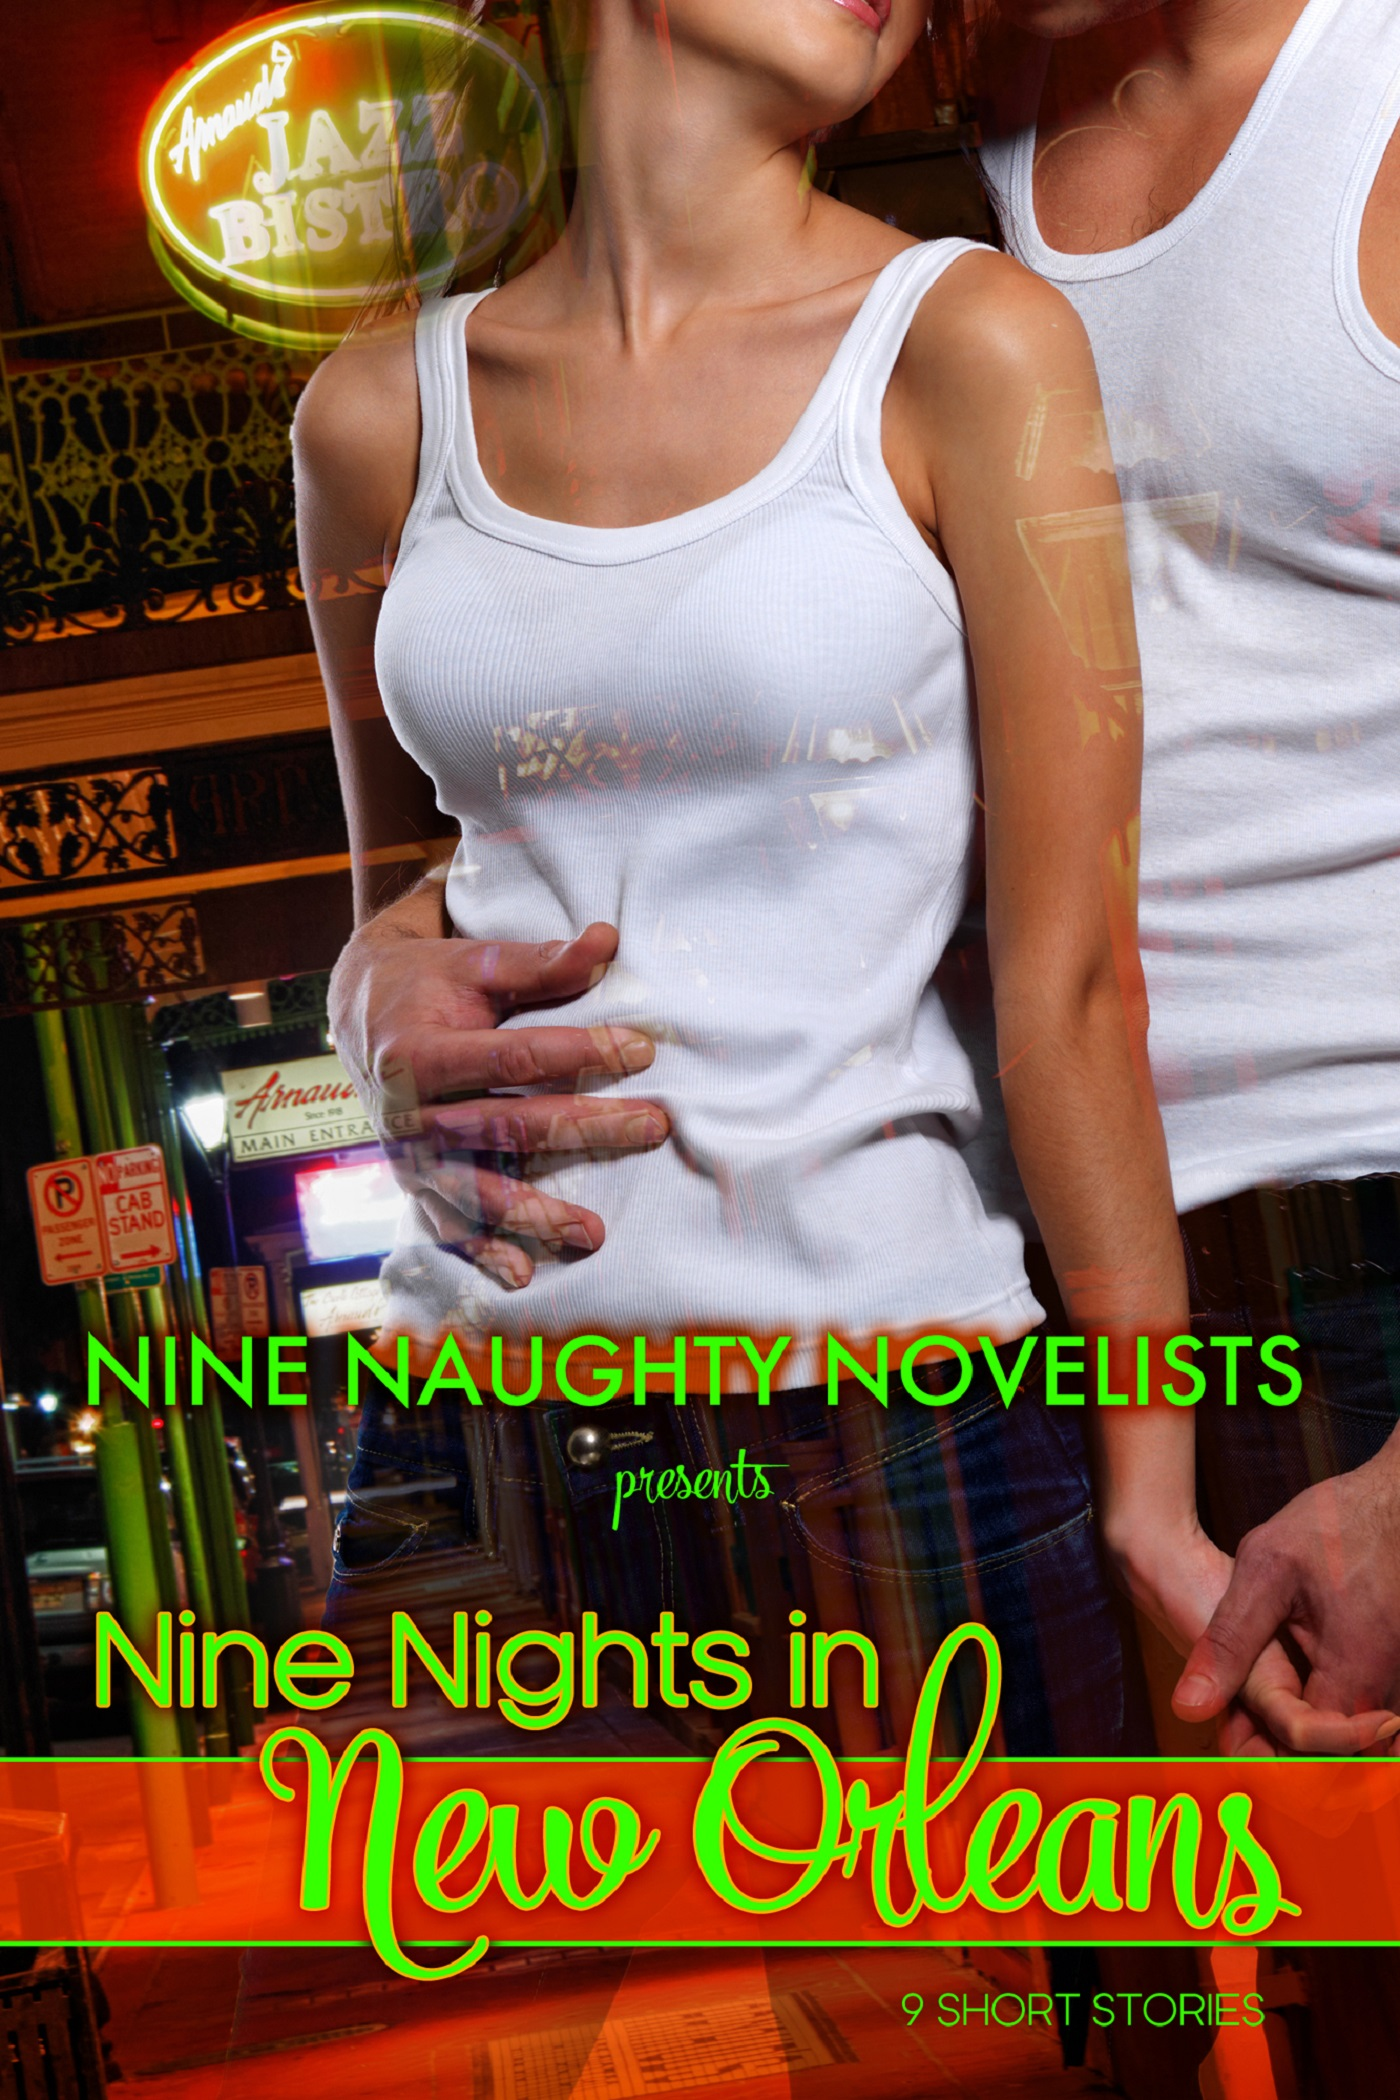 Nine Naughty Novelists Present: 9 Nights in New Orleans